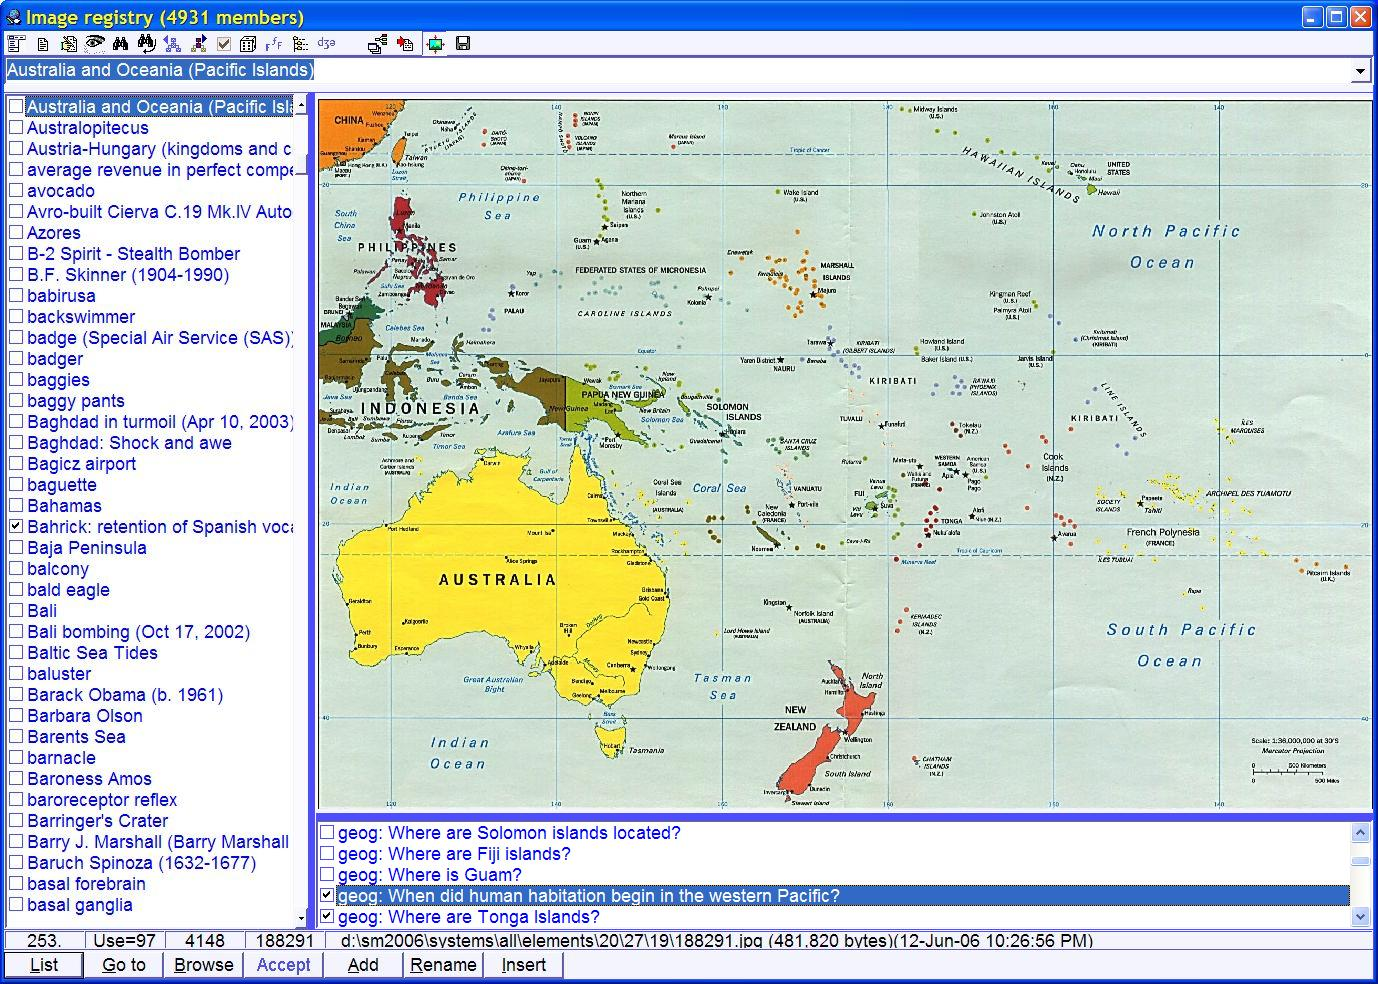 SuperMemo: image registry displaying a picture of Australia and Oceania